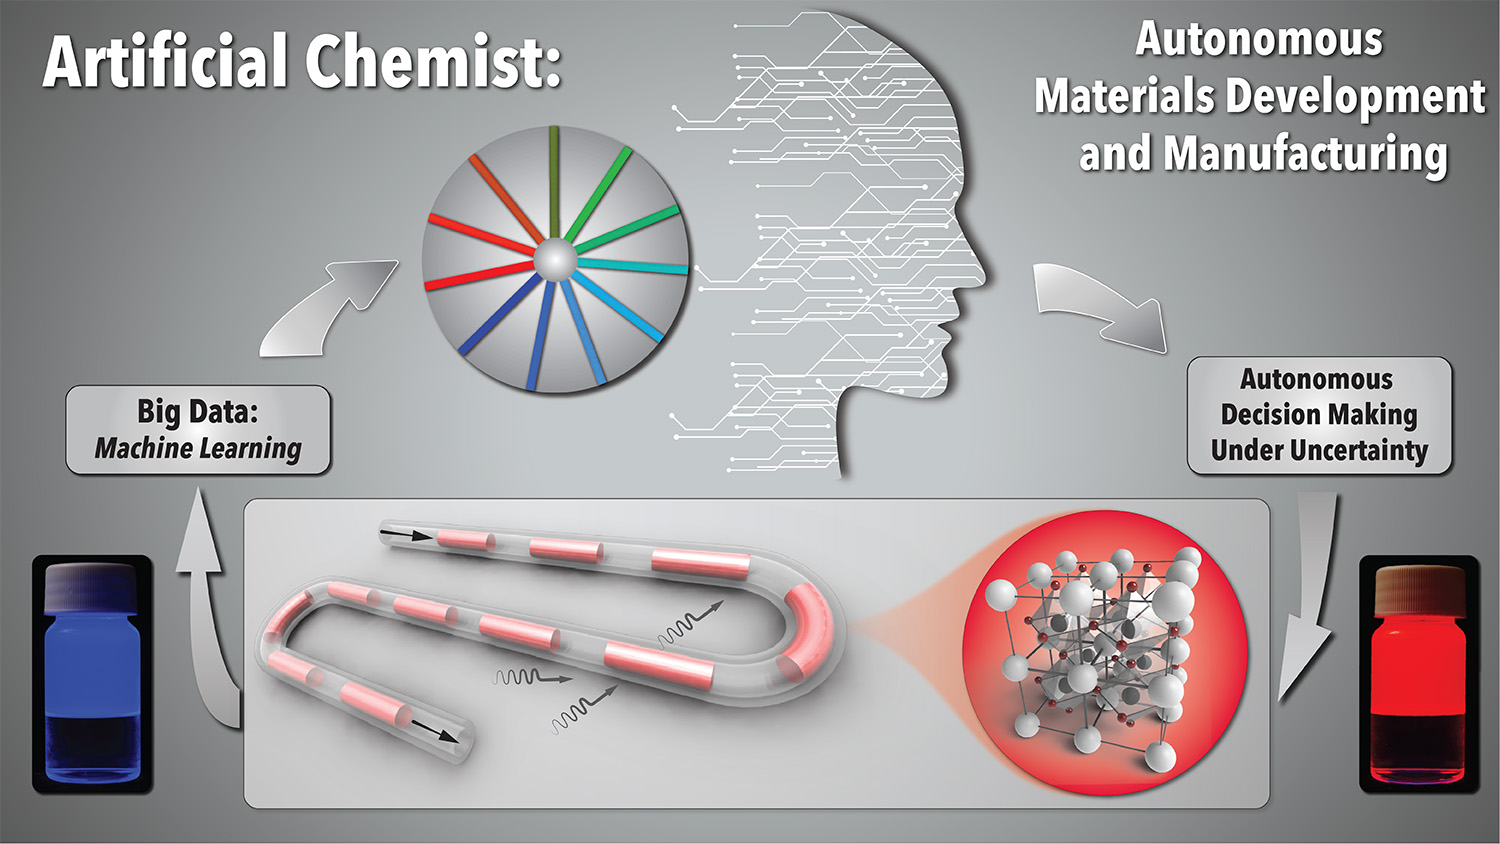 Schematic of Artificial Chemist operation